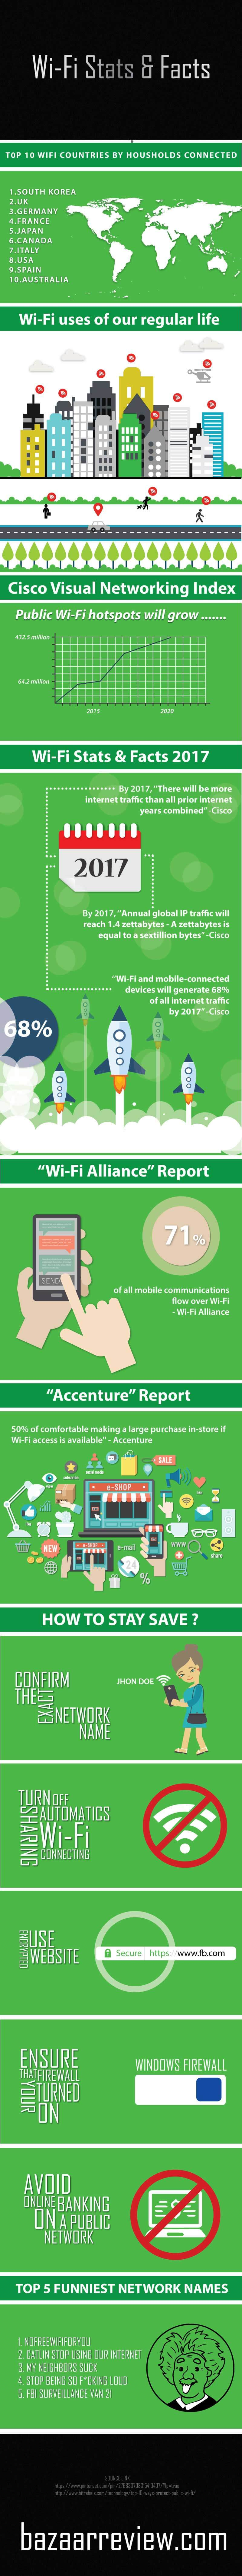 Wireless Router Infographic